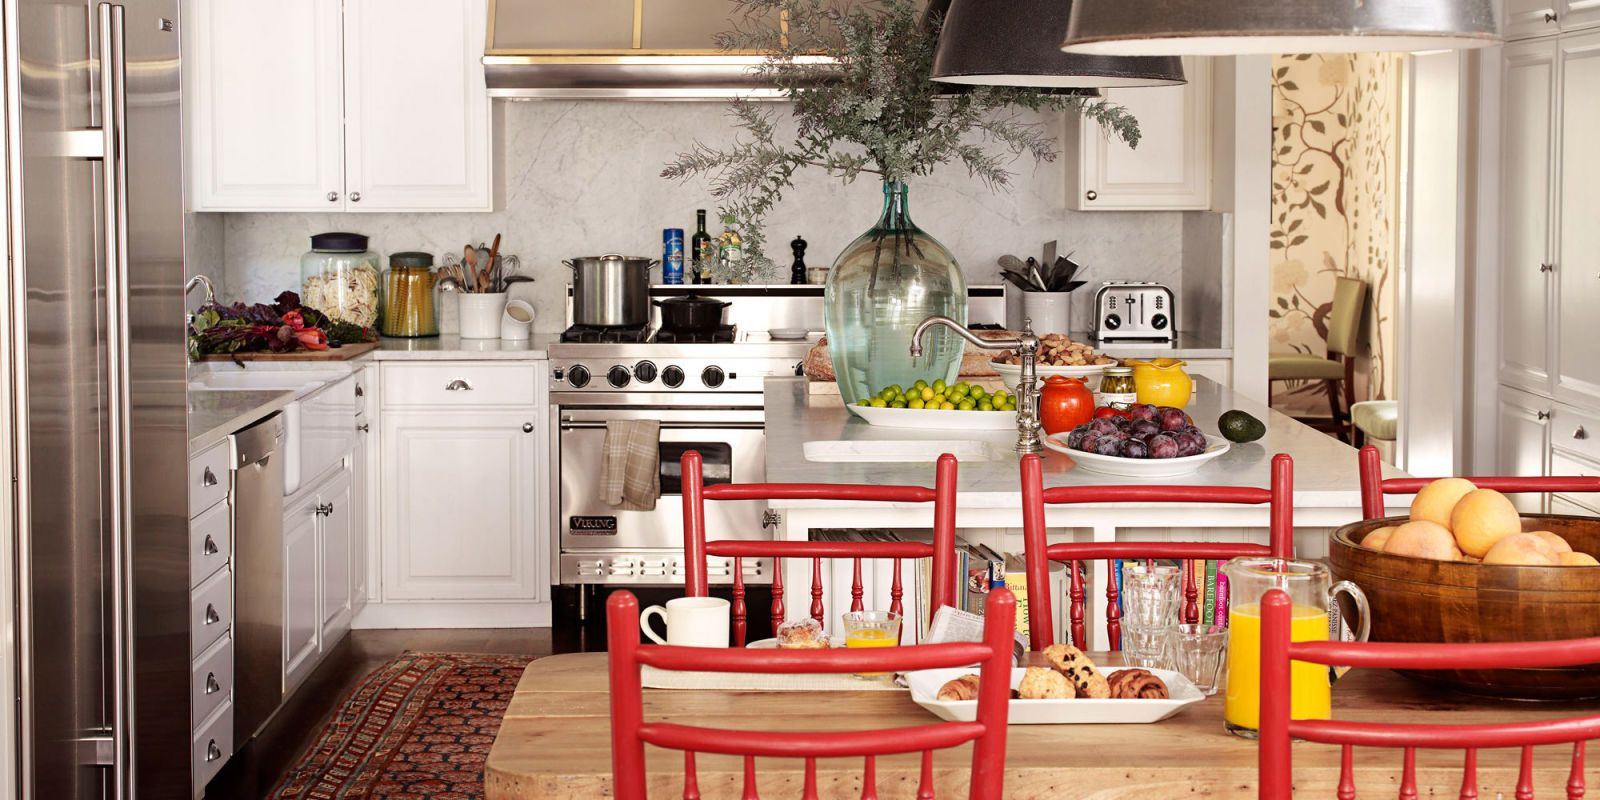 ... Formerly Of Ralph Lauren And Now Owner Of His Eponymous Design Firm, A  Question From Our Readers. This Weeku0027s Topic Is About Updating Kitchen  Cabinets.